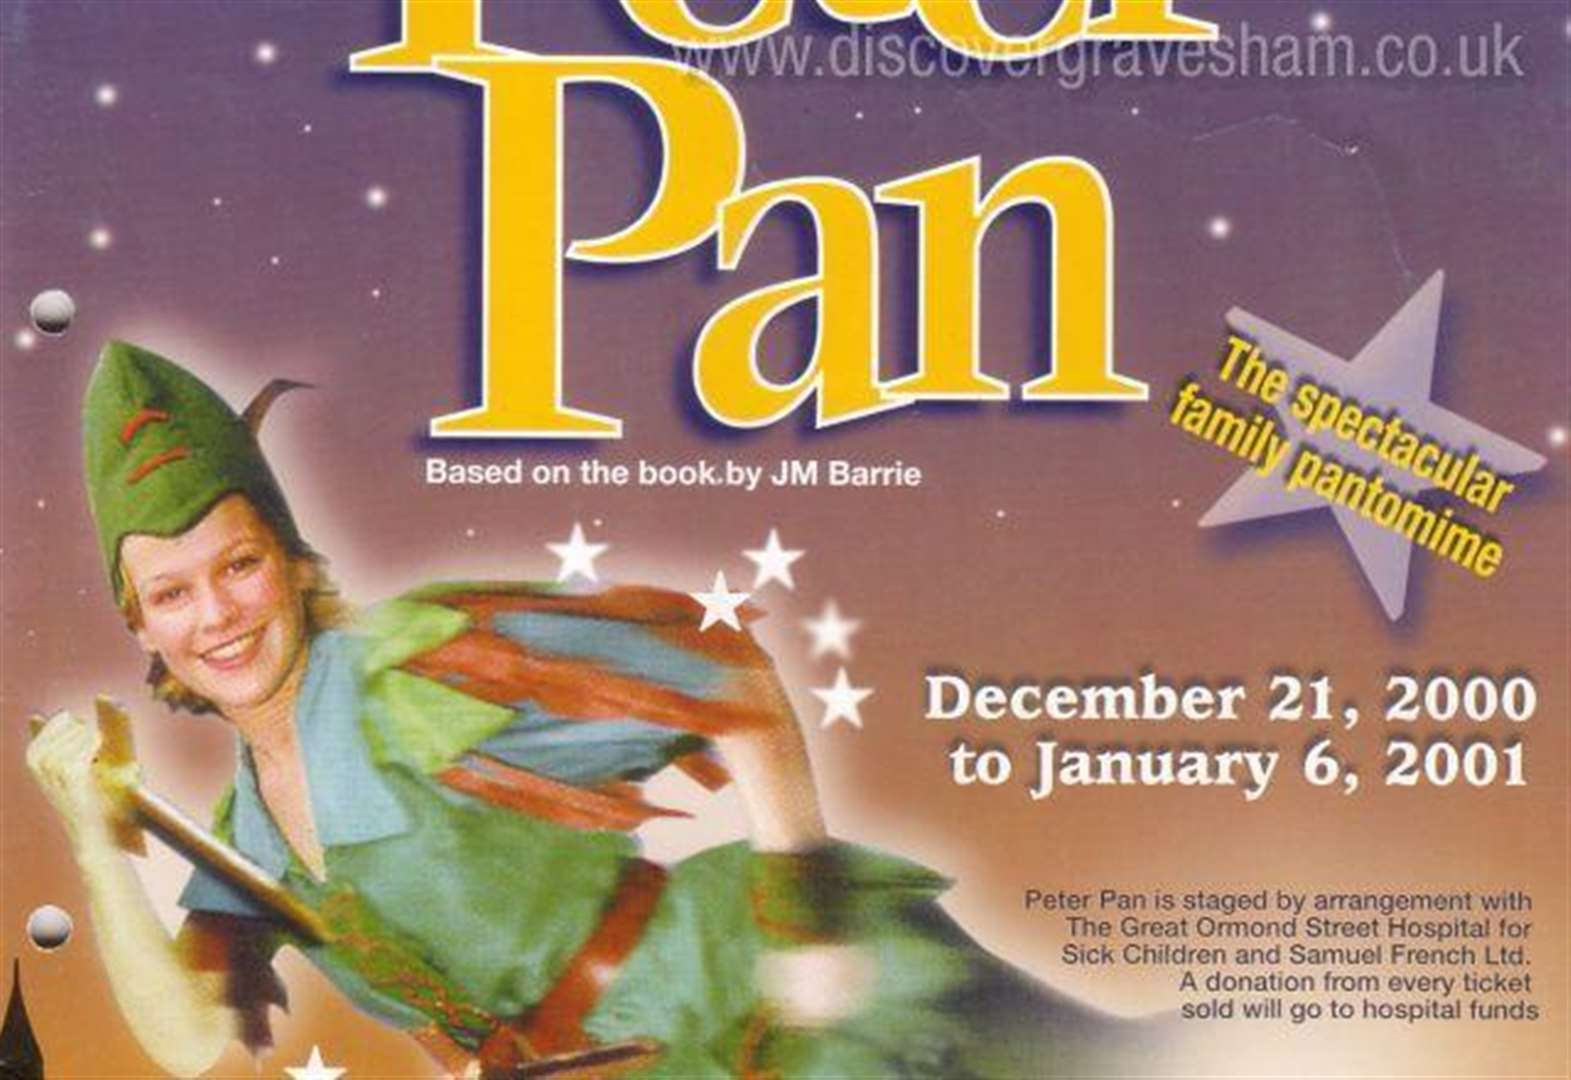 Half a century of pantomimes at The Woodville Theatre